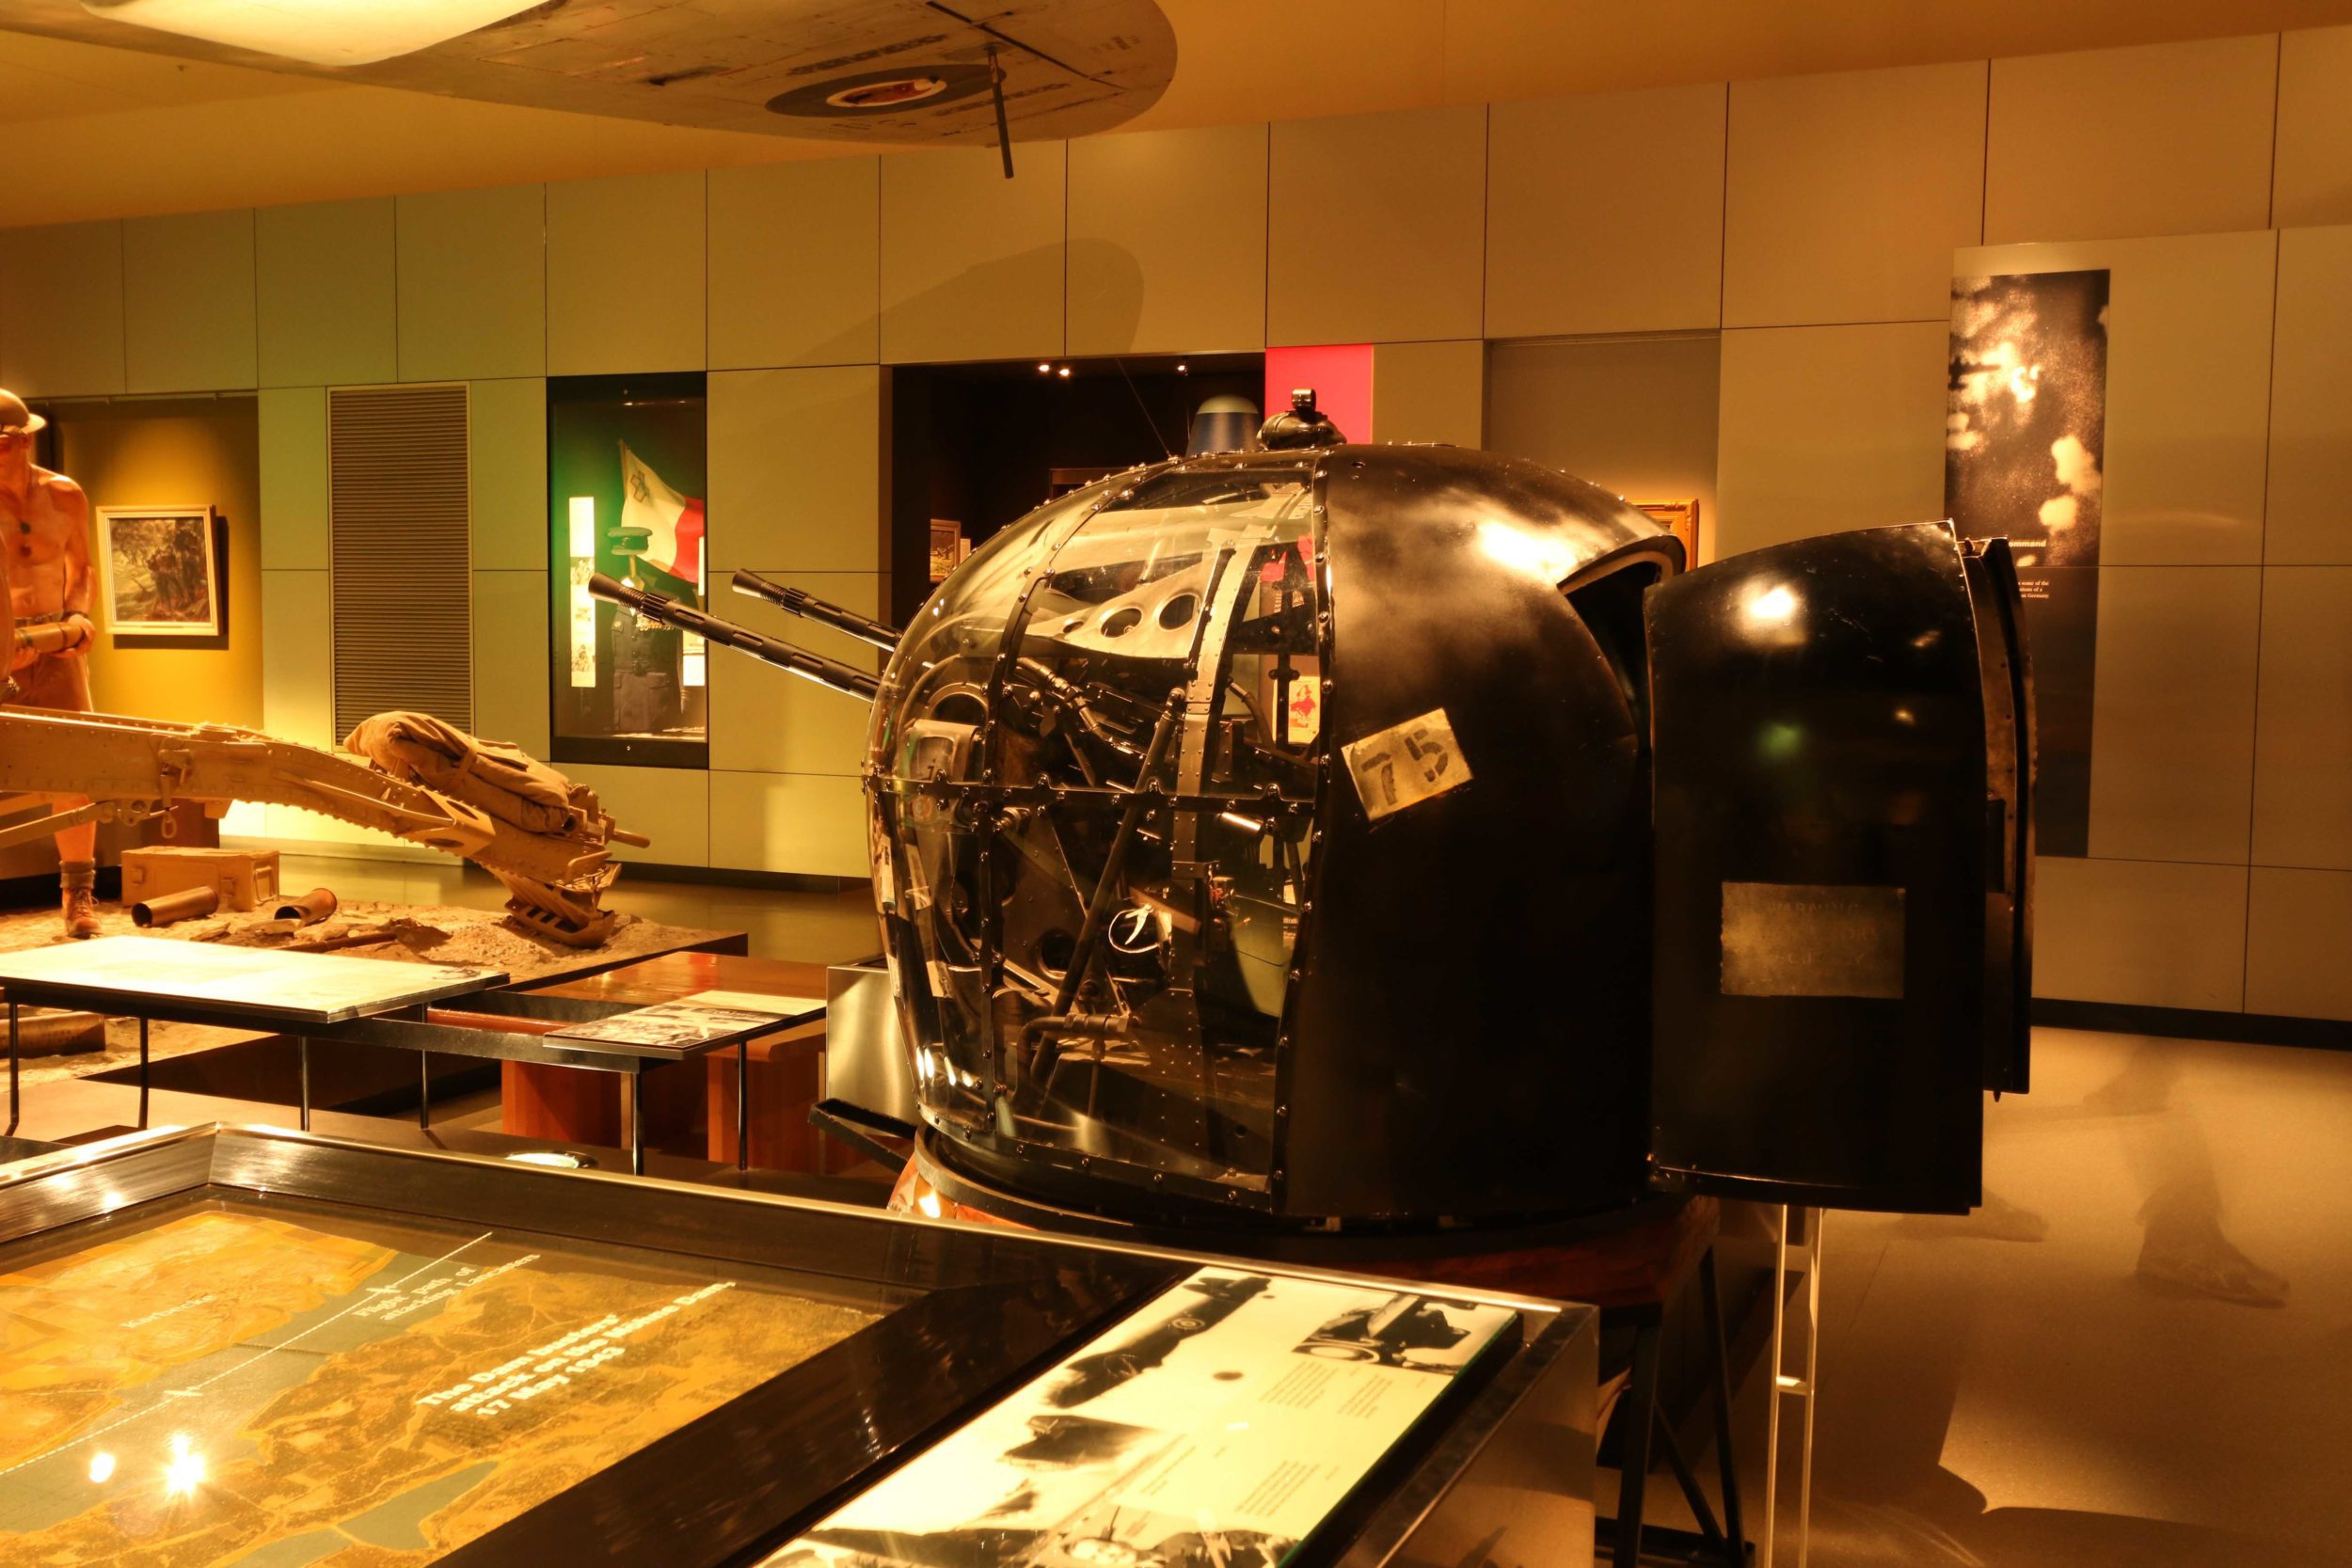 Tail Gunner Turret in the Second World War Exhibition at the Australian War Memorial in Canberra